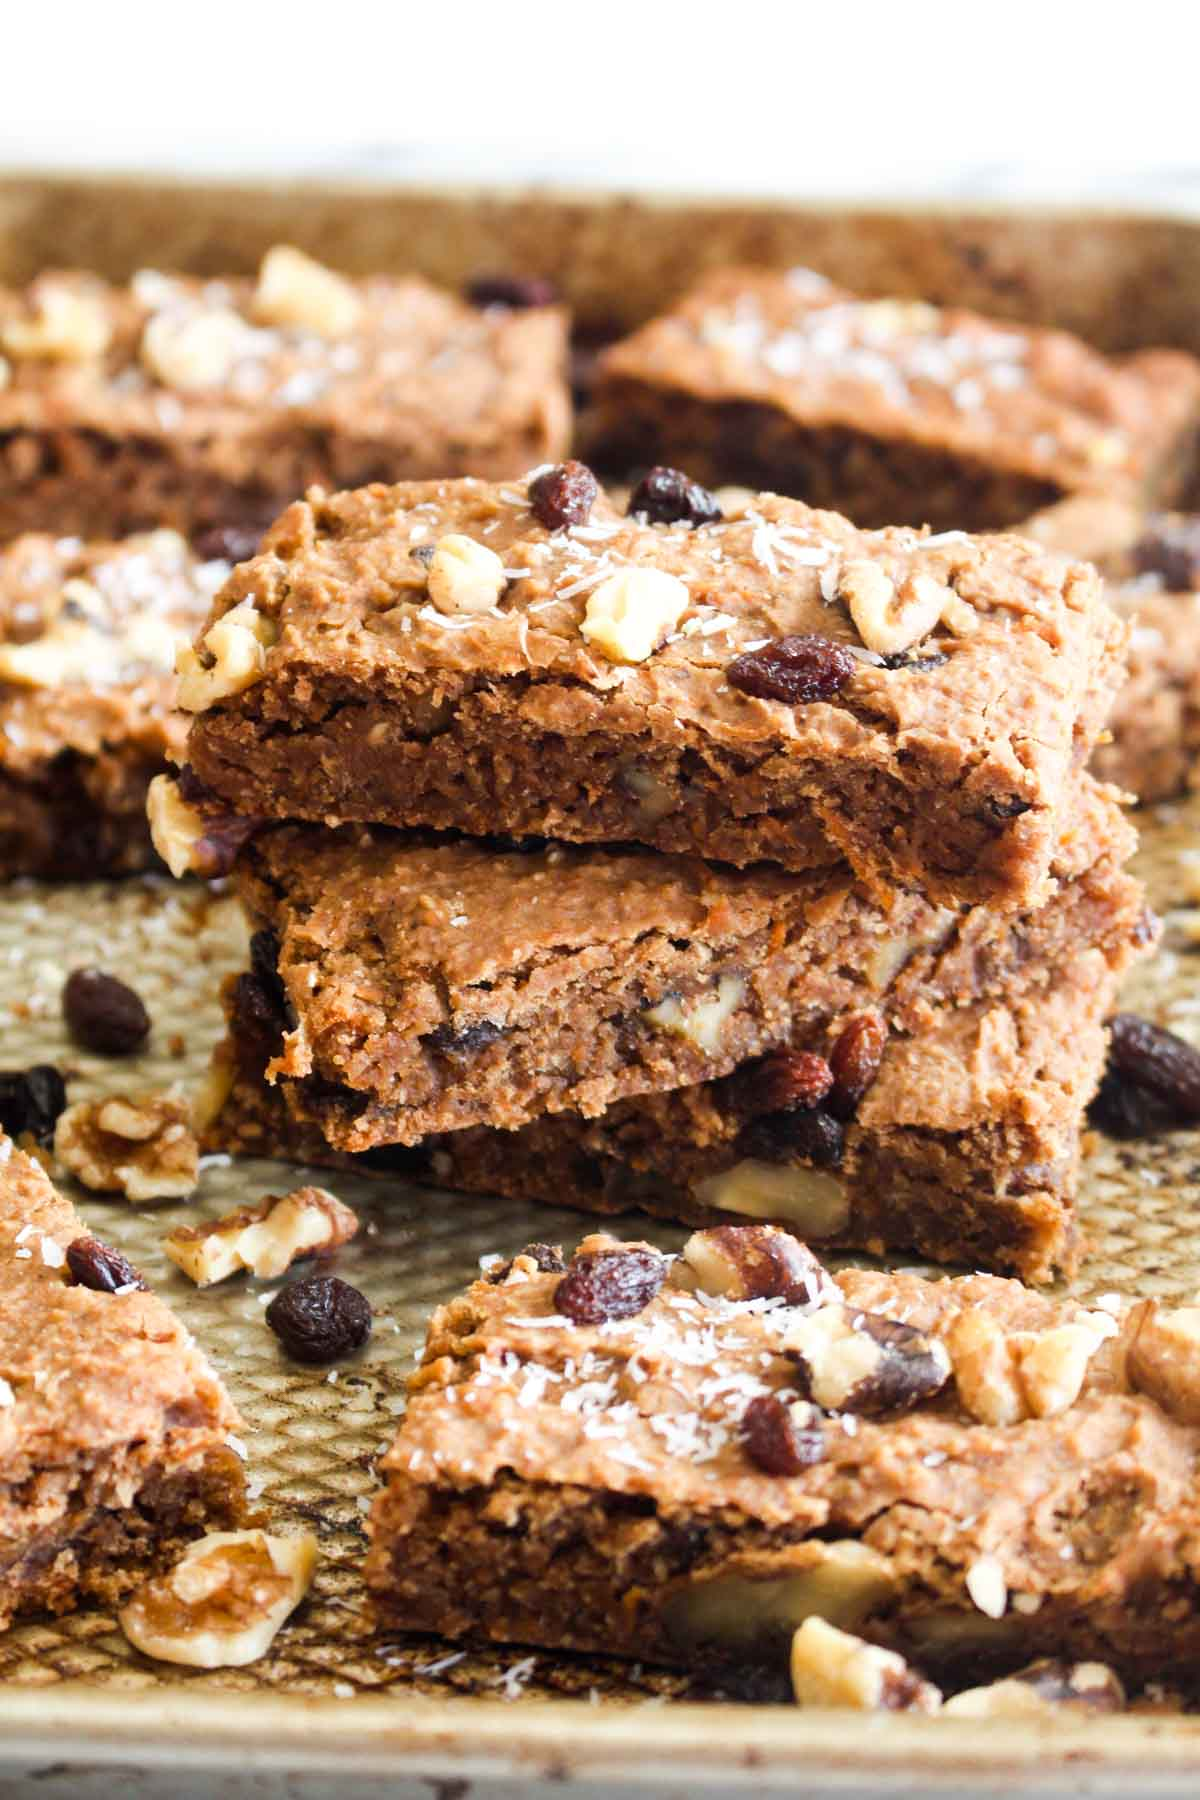 These Carrot Cake Bars are a secretly healthy treat! Full of carrot cake flavors, but made without refined sugar, flour, or oil! | CatchingSeeds.com